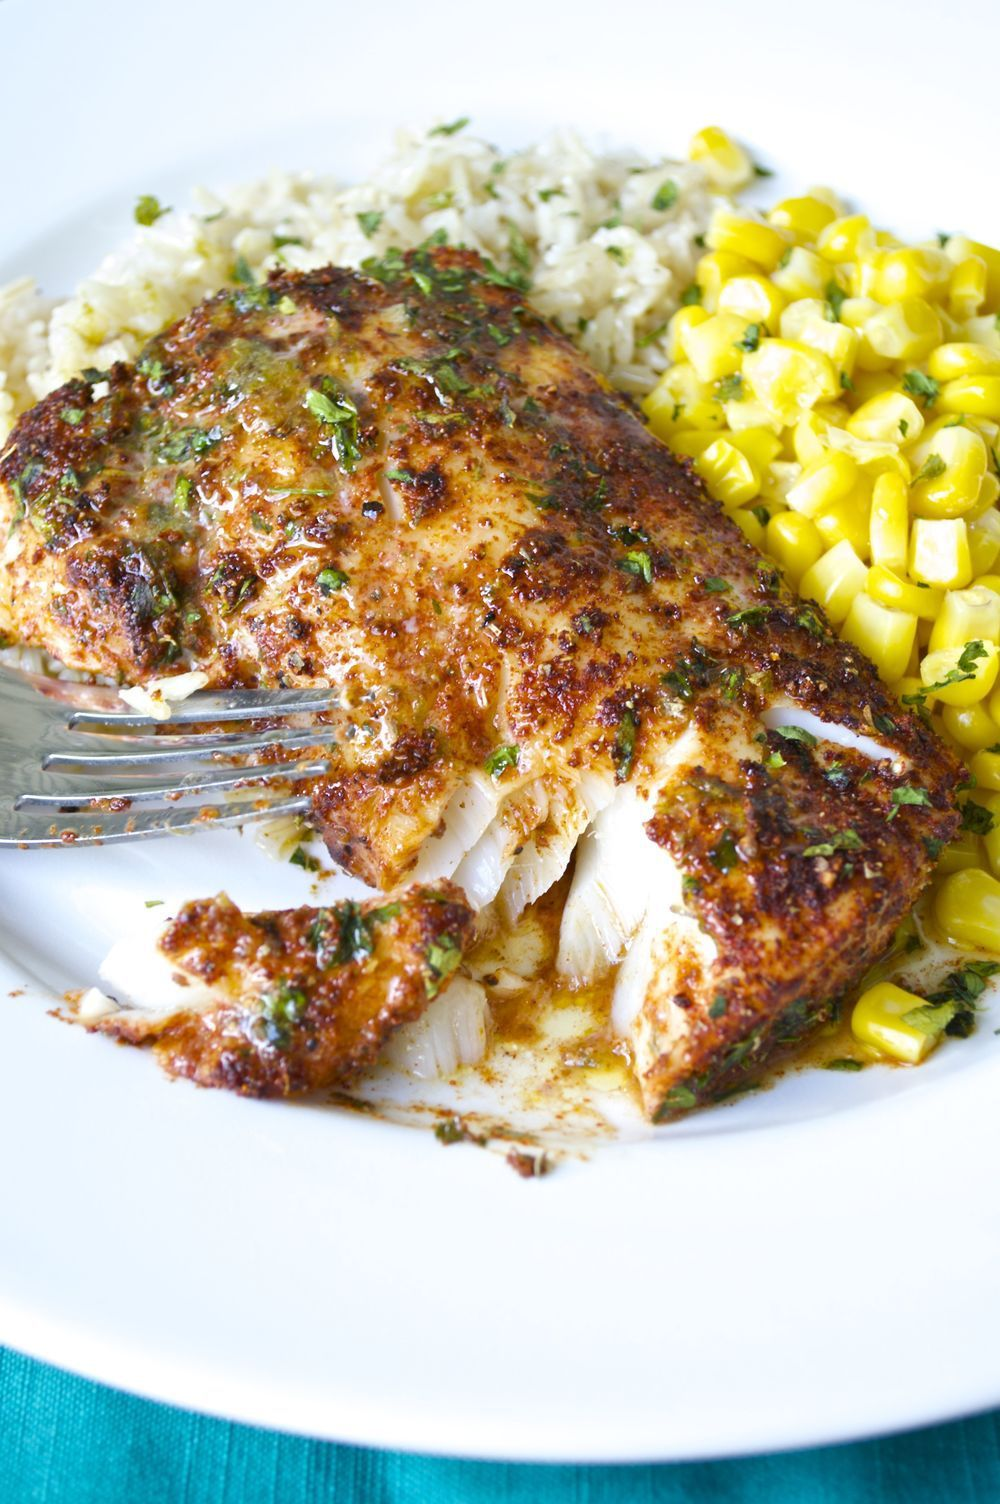 Baked Chicken Recipes Lemon Olive Oils